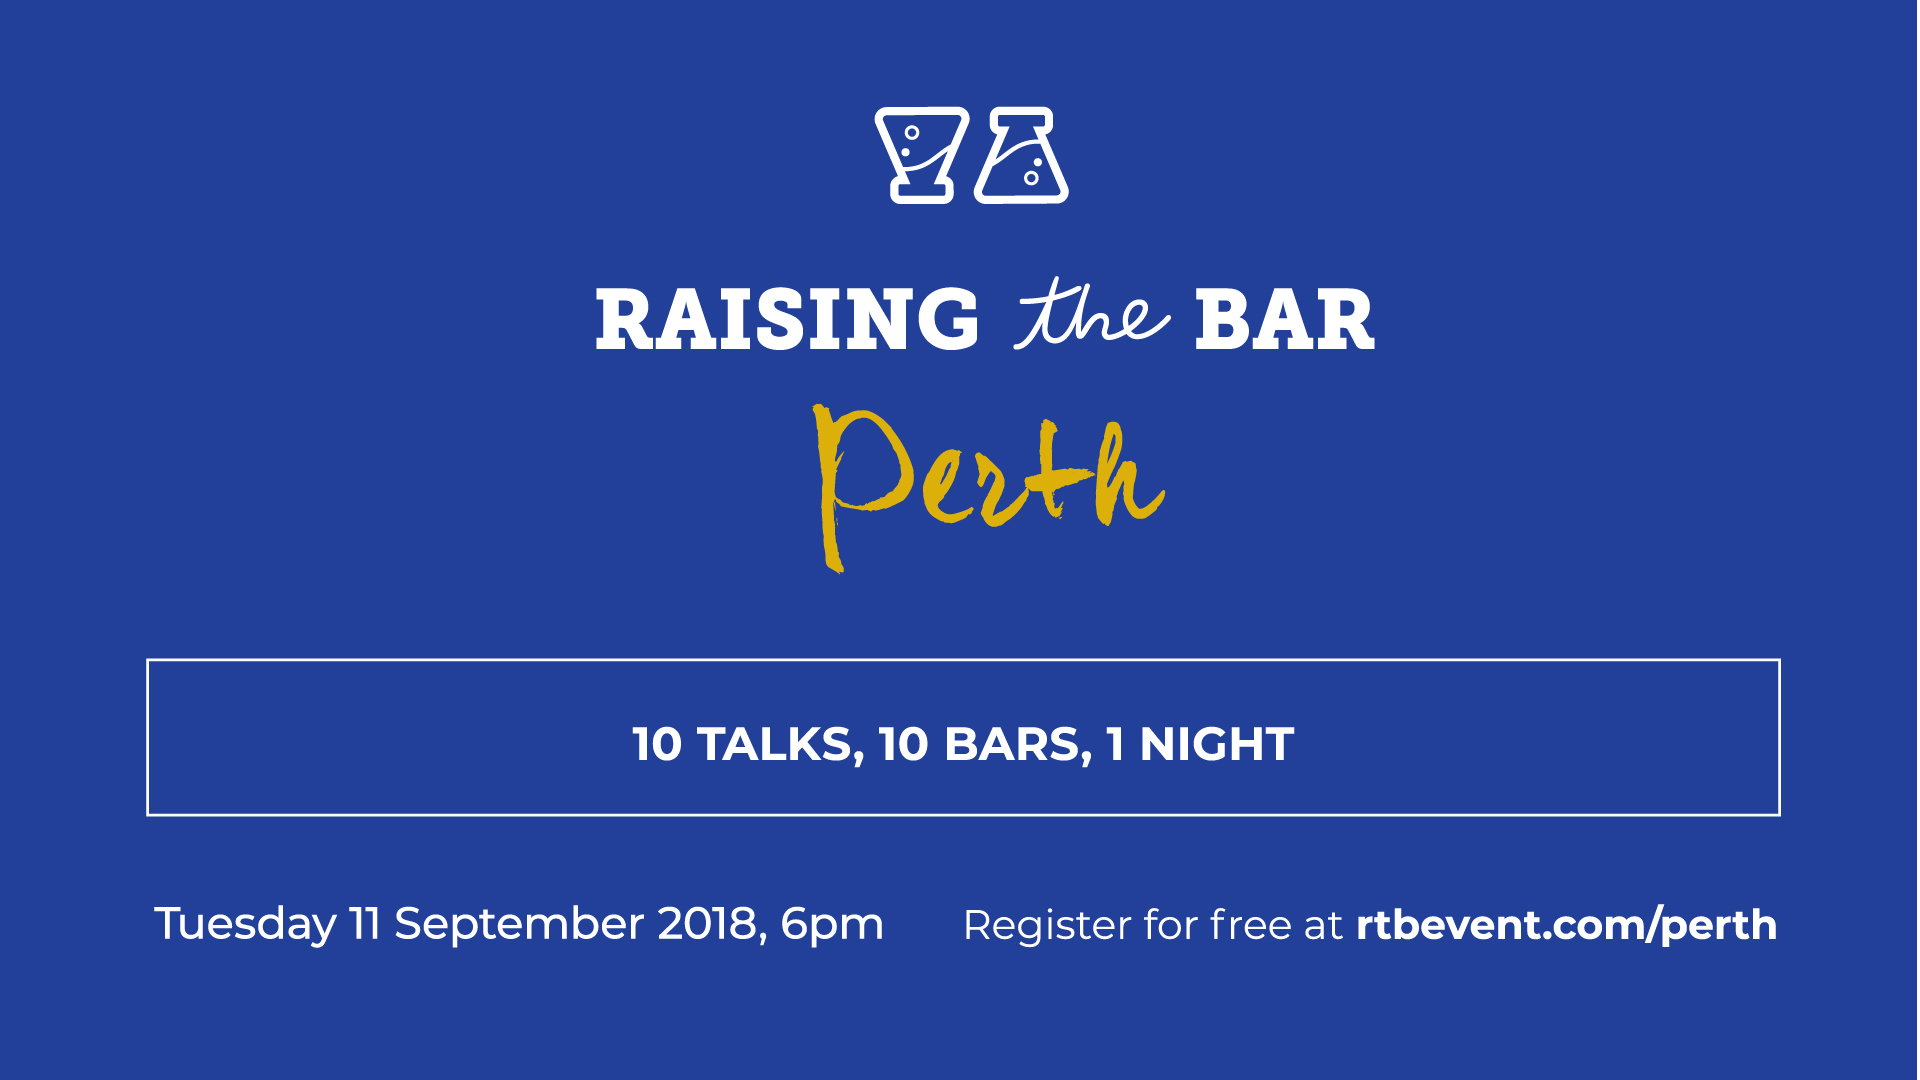 Raising the Bar Perth, brought to you by the University of Western Australia